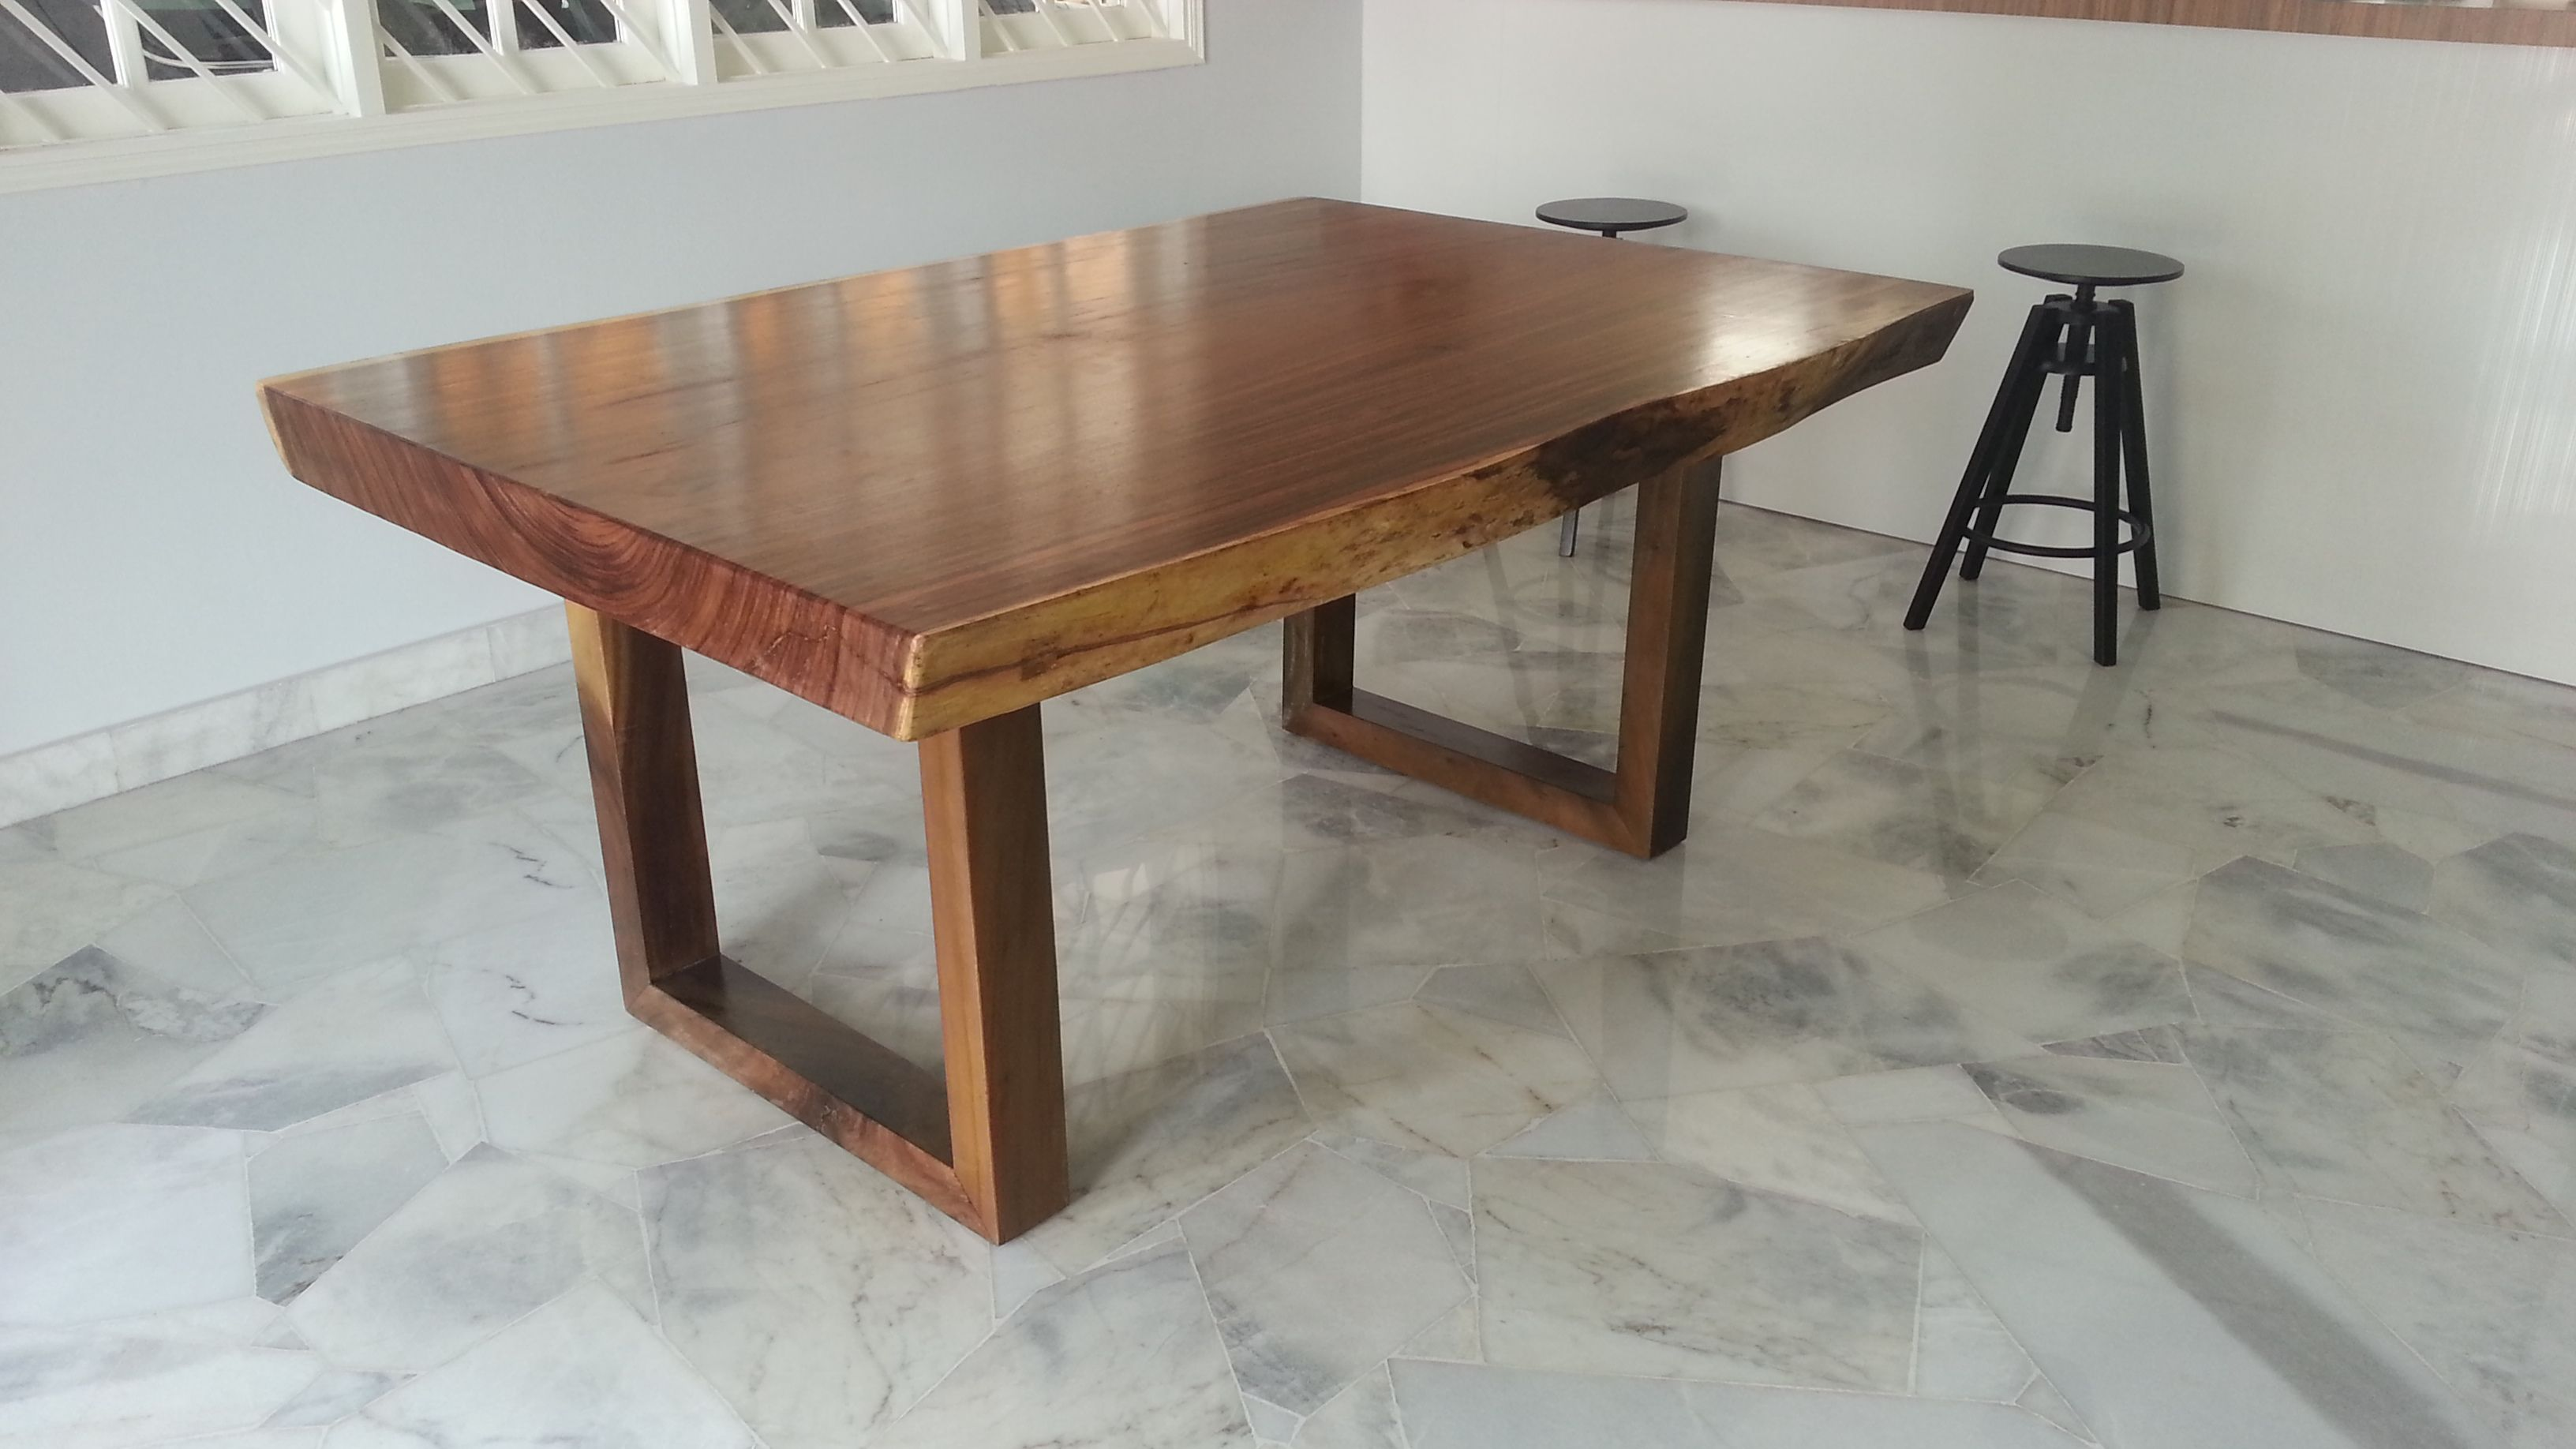 Teak Furniture Malaysia Teak Wood Furniture Shop Selangor Malaysia Teak Wood Furniture Wood Furniture Store Furniture